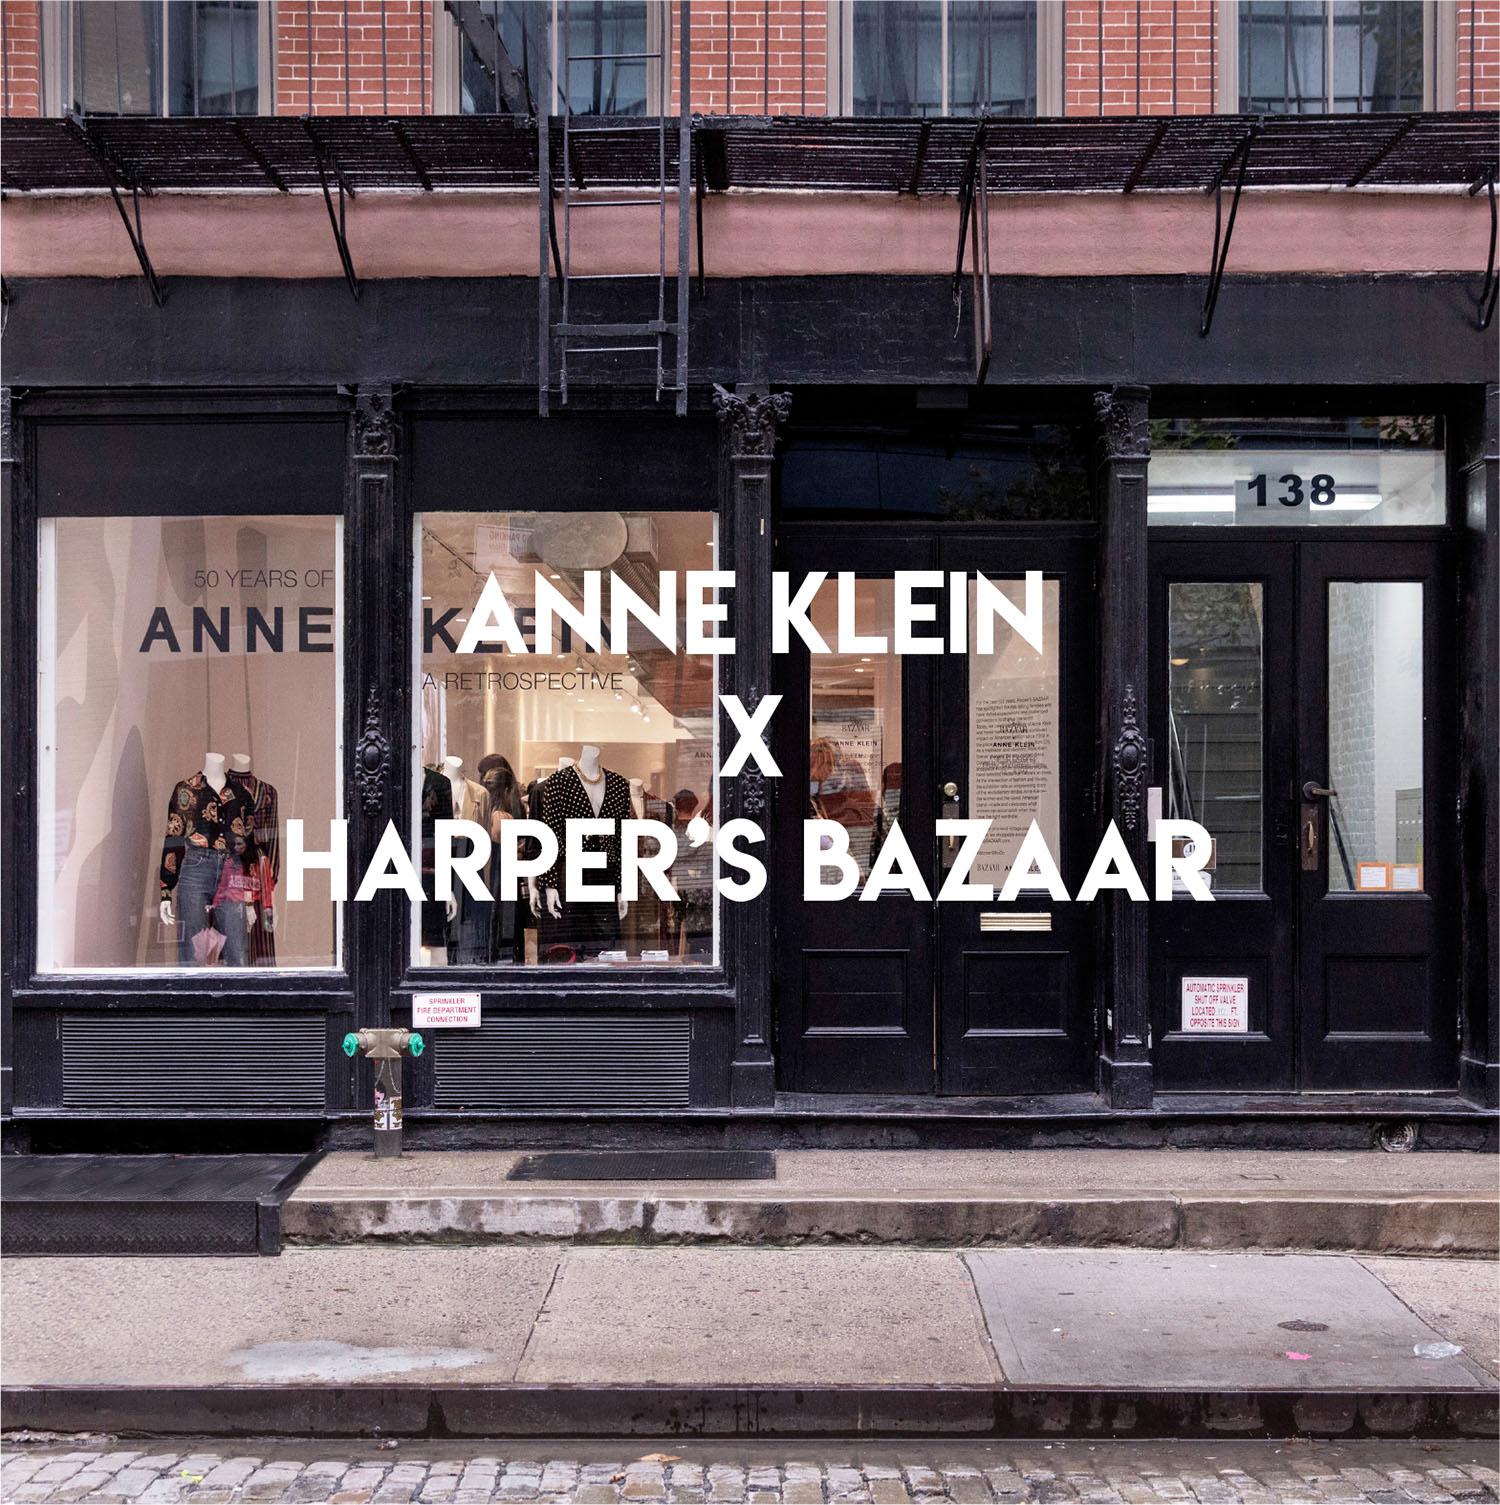 Annd Klein X Harpers Bazaar in New York, NY by Gala Magriña Design